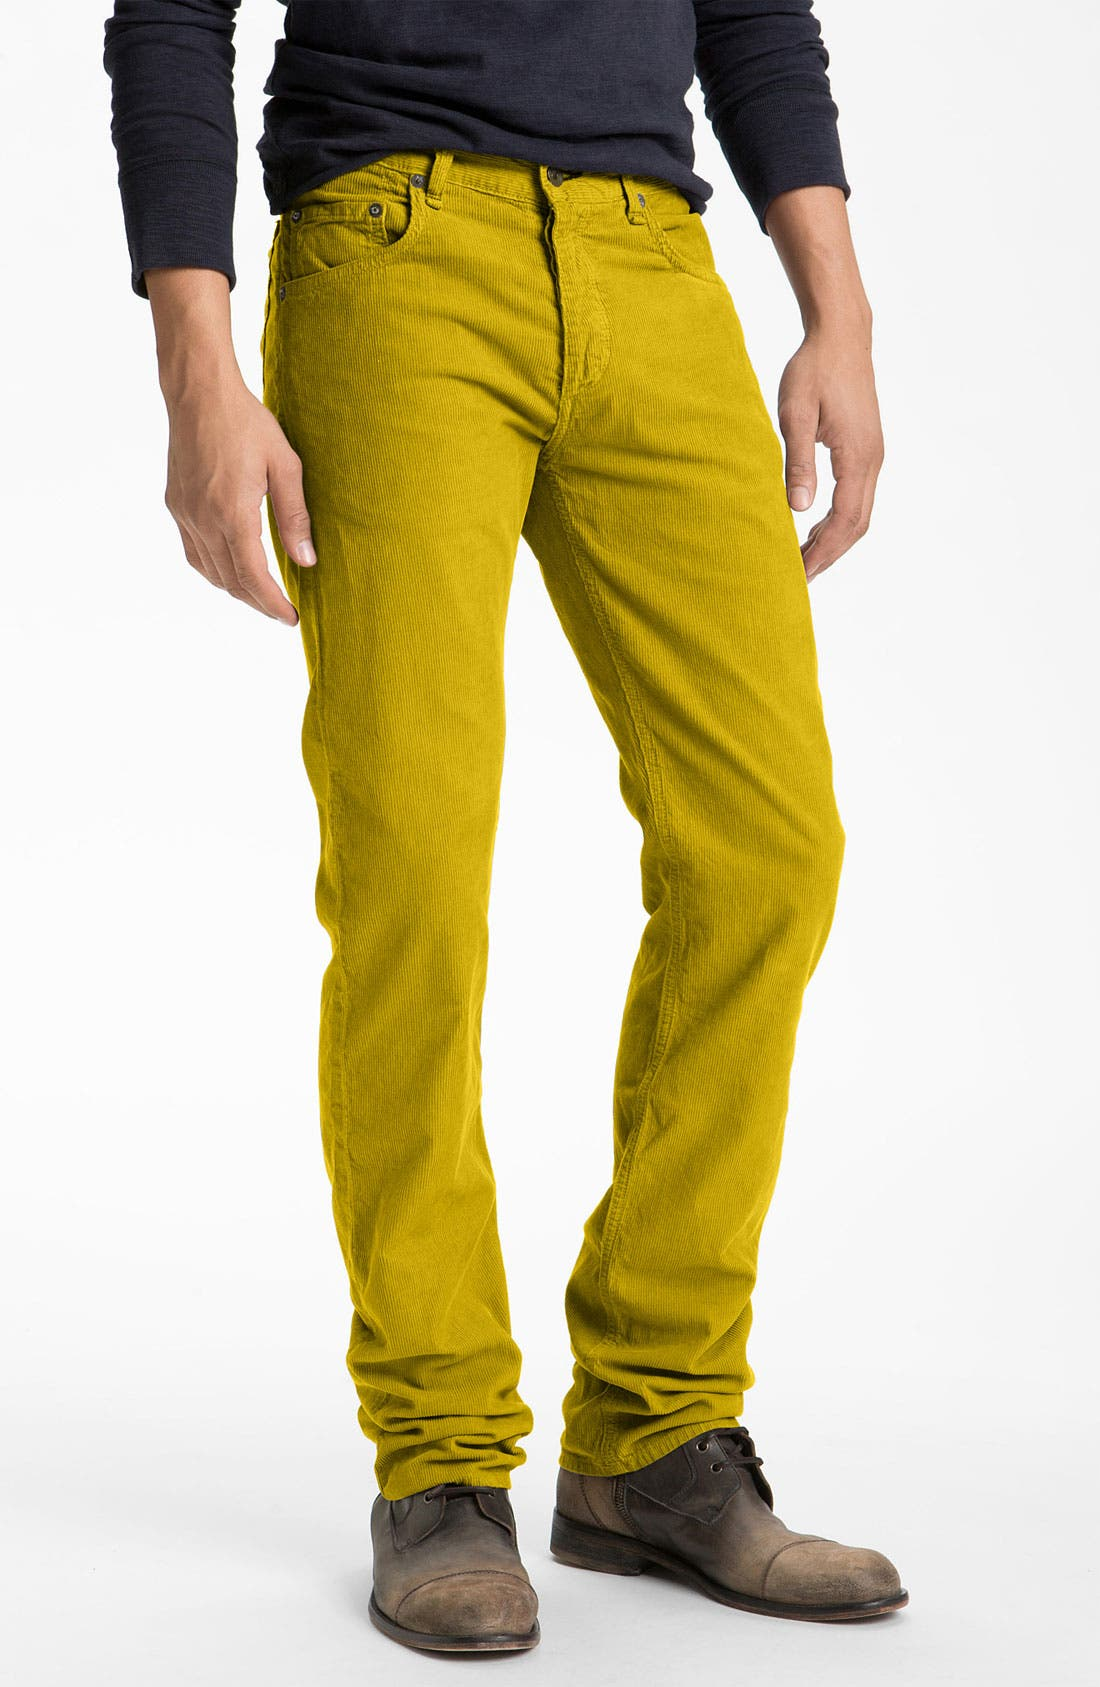 Alternate Image 1 Selected - rag & bone 'RB15X-C' Corduroy Pants